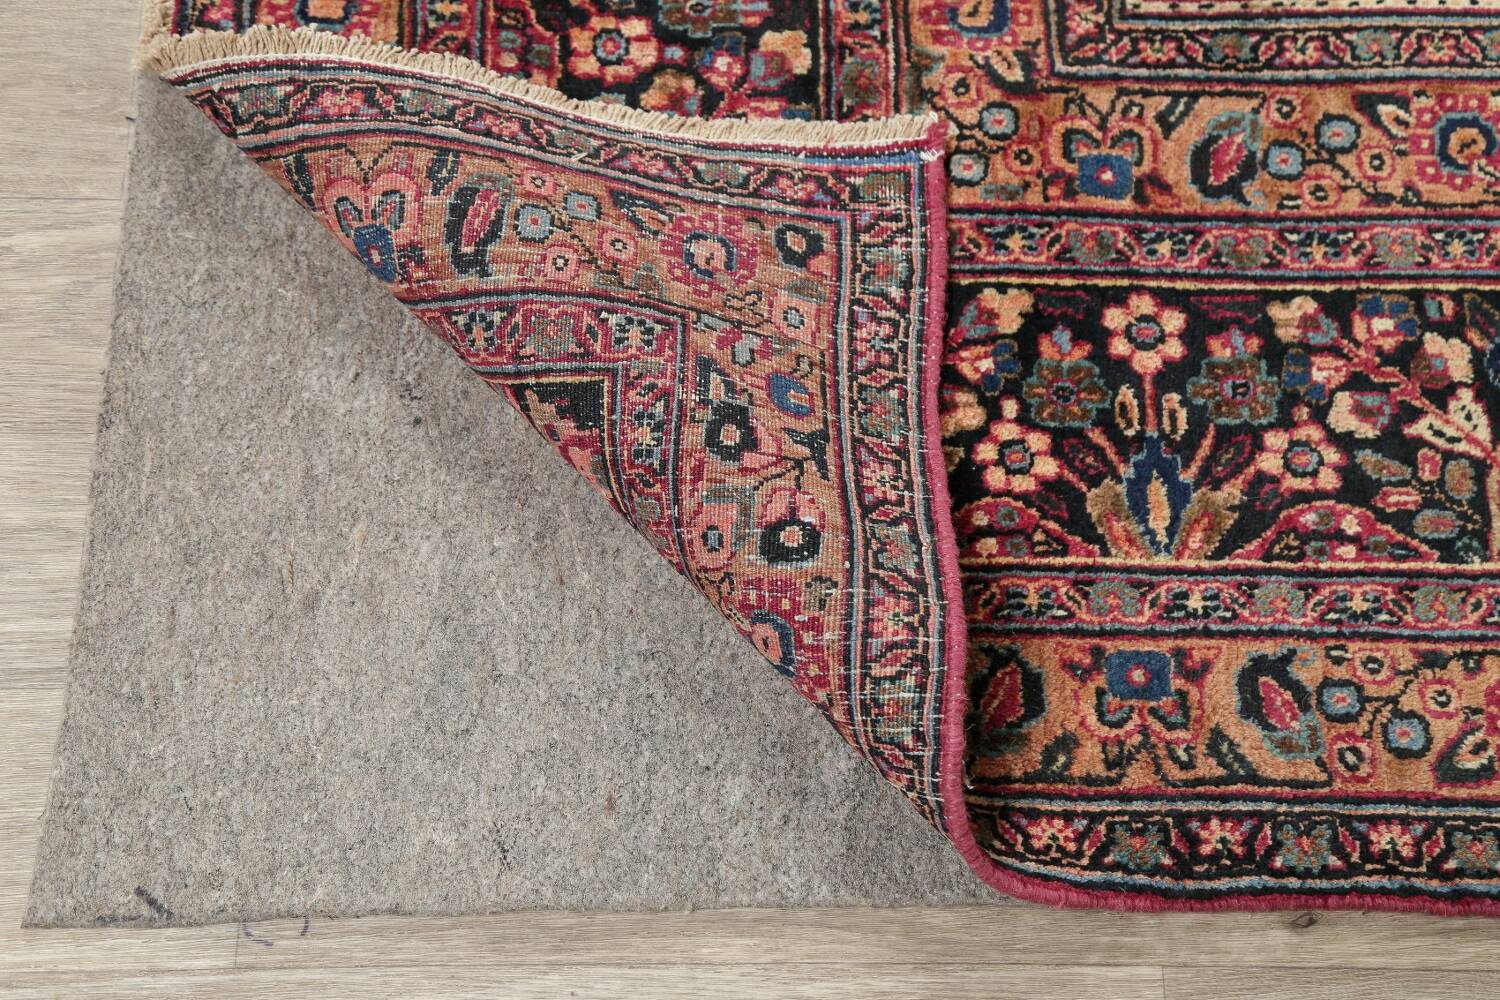 Antique Floral Red Dorokhsh Persian Rug Large 11x14 image 7